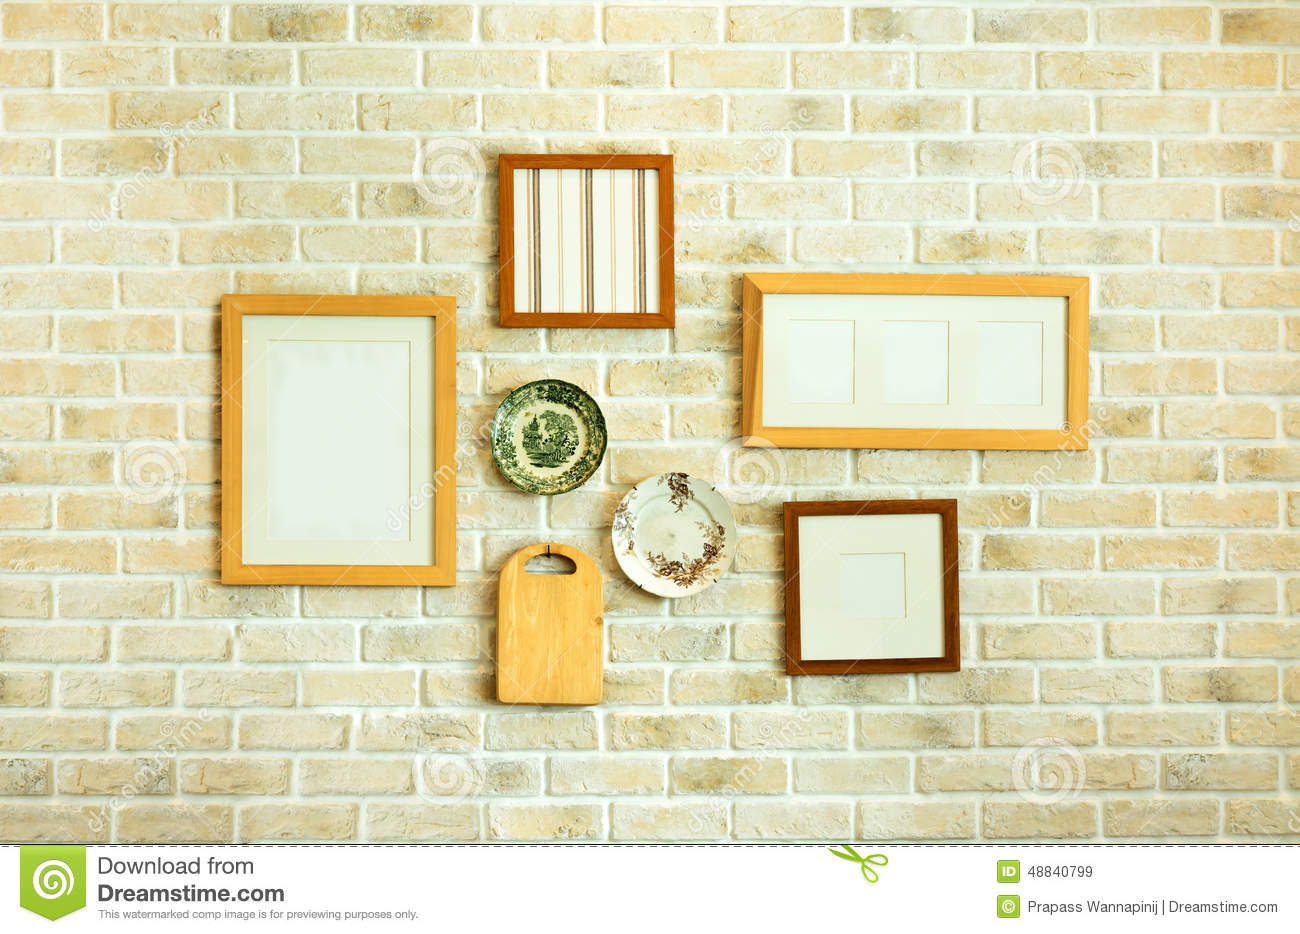 restaurant white brick wall decoration stock photo - image: 48840799